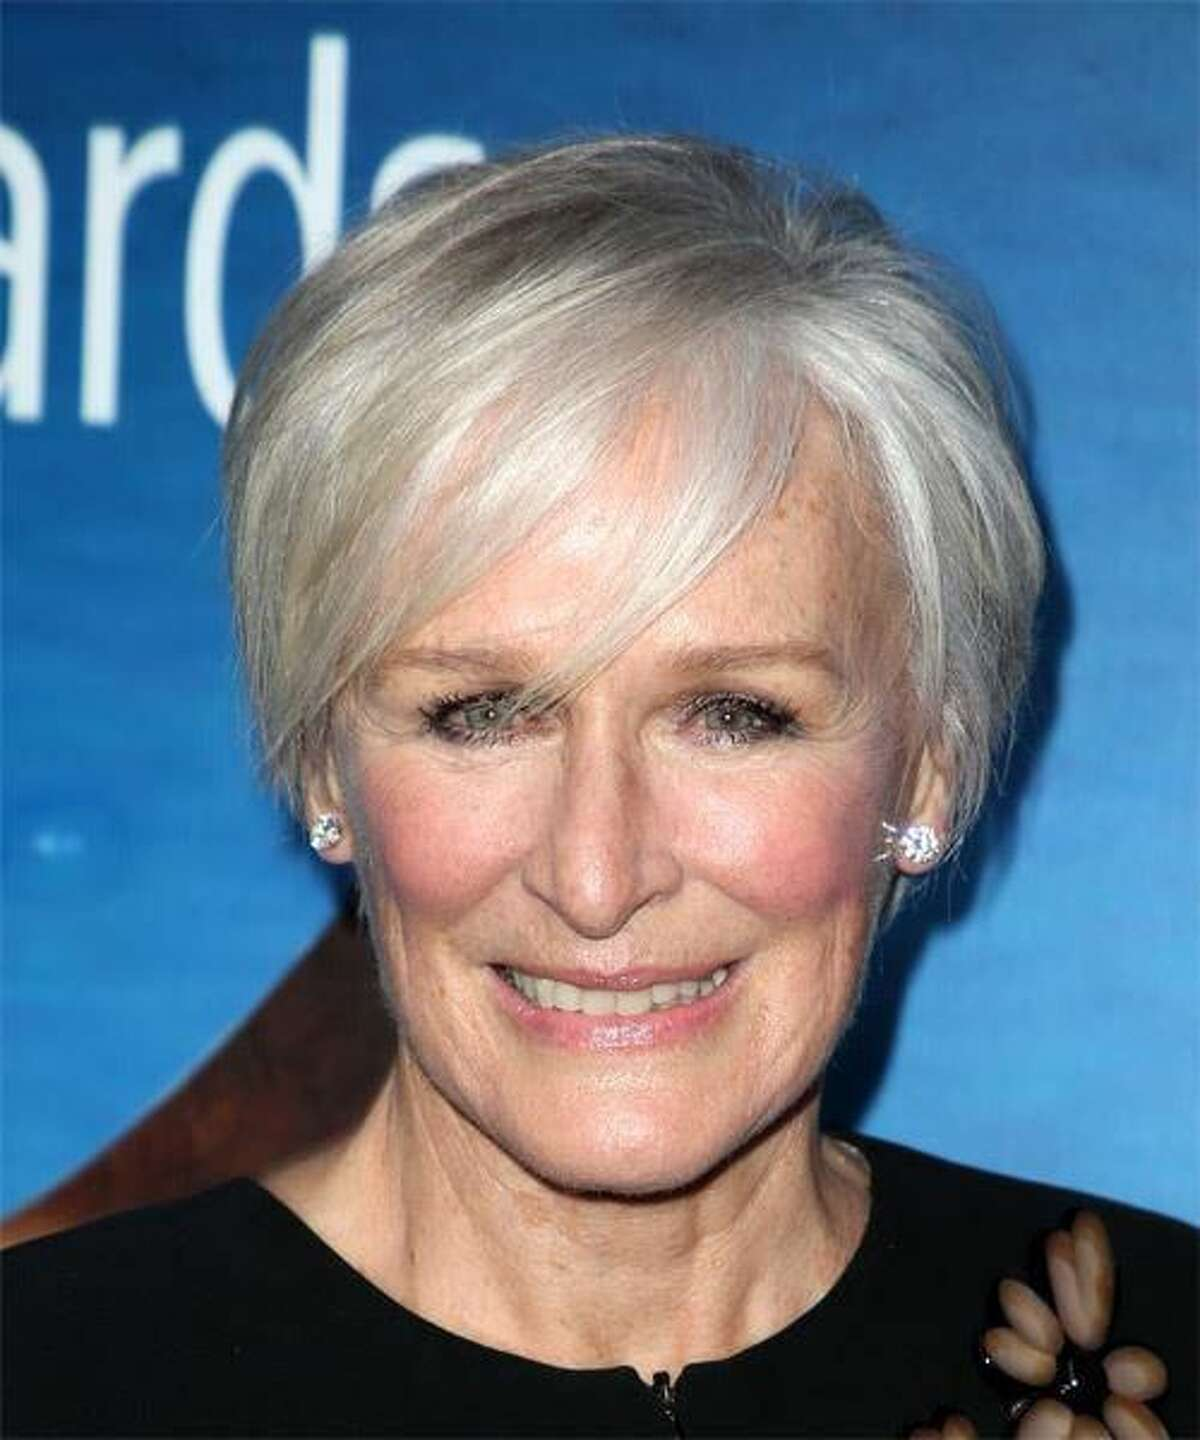 """Glenn Close may finally win an Oscar for her role in the summer film, """"The Wife,"""" opening Aug. 3."""